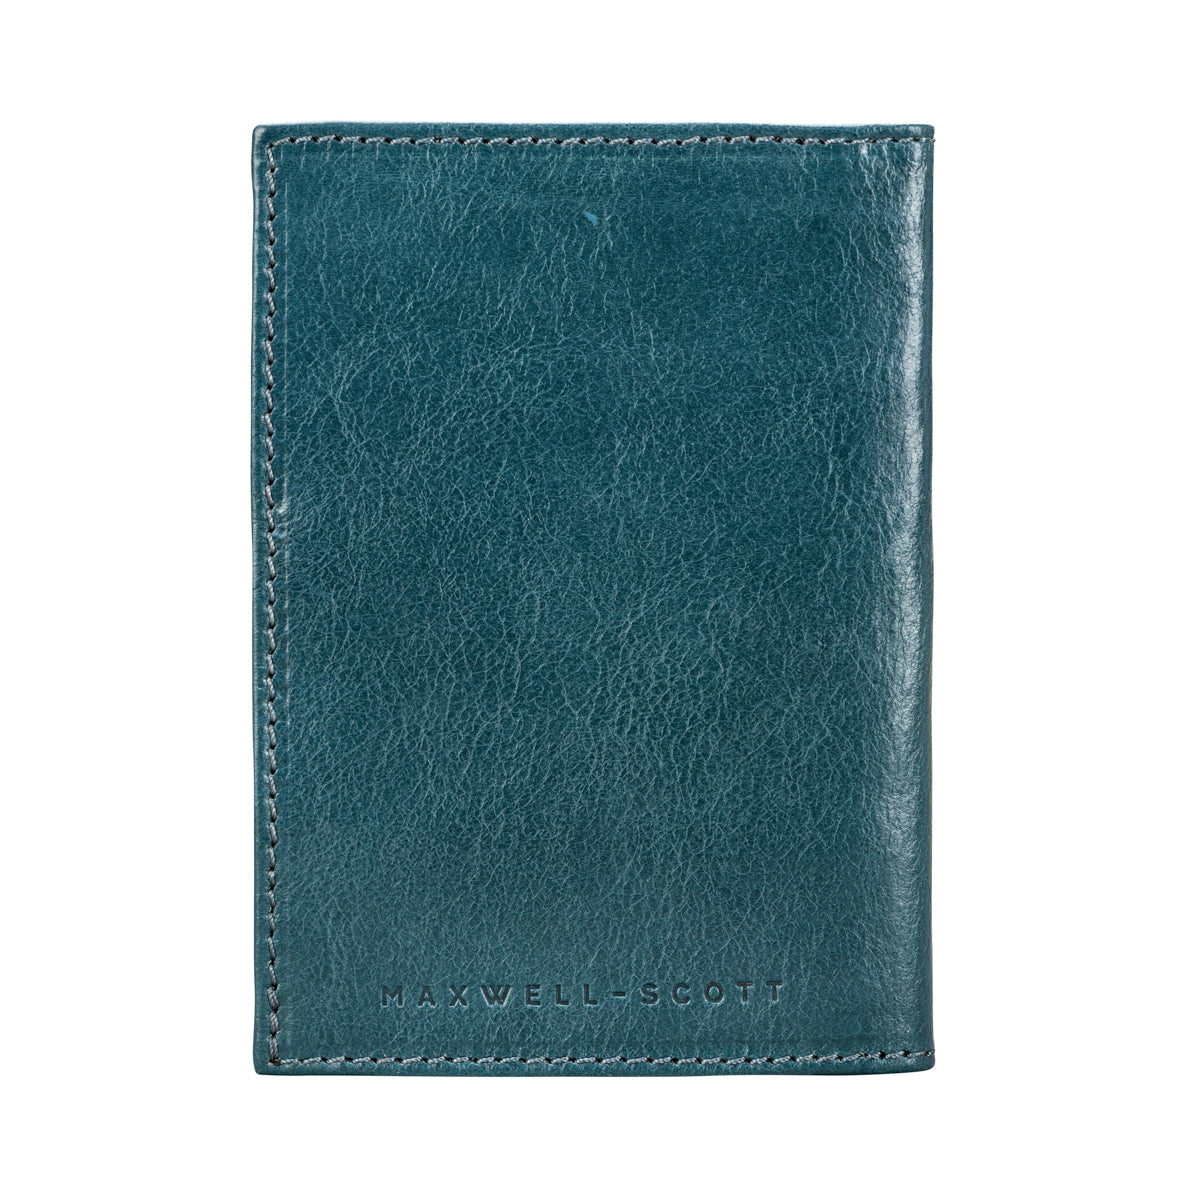 Image 3 of the 'Prato' Leather Passport Cover